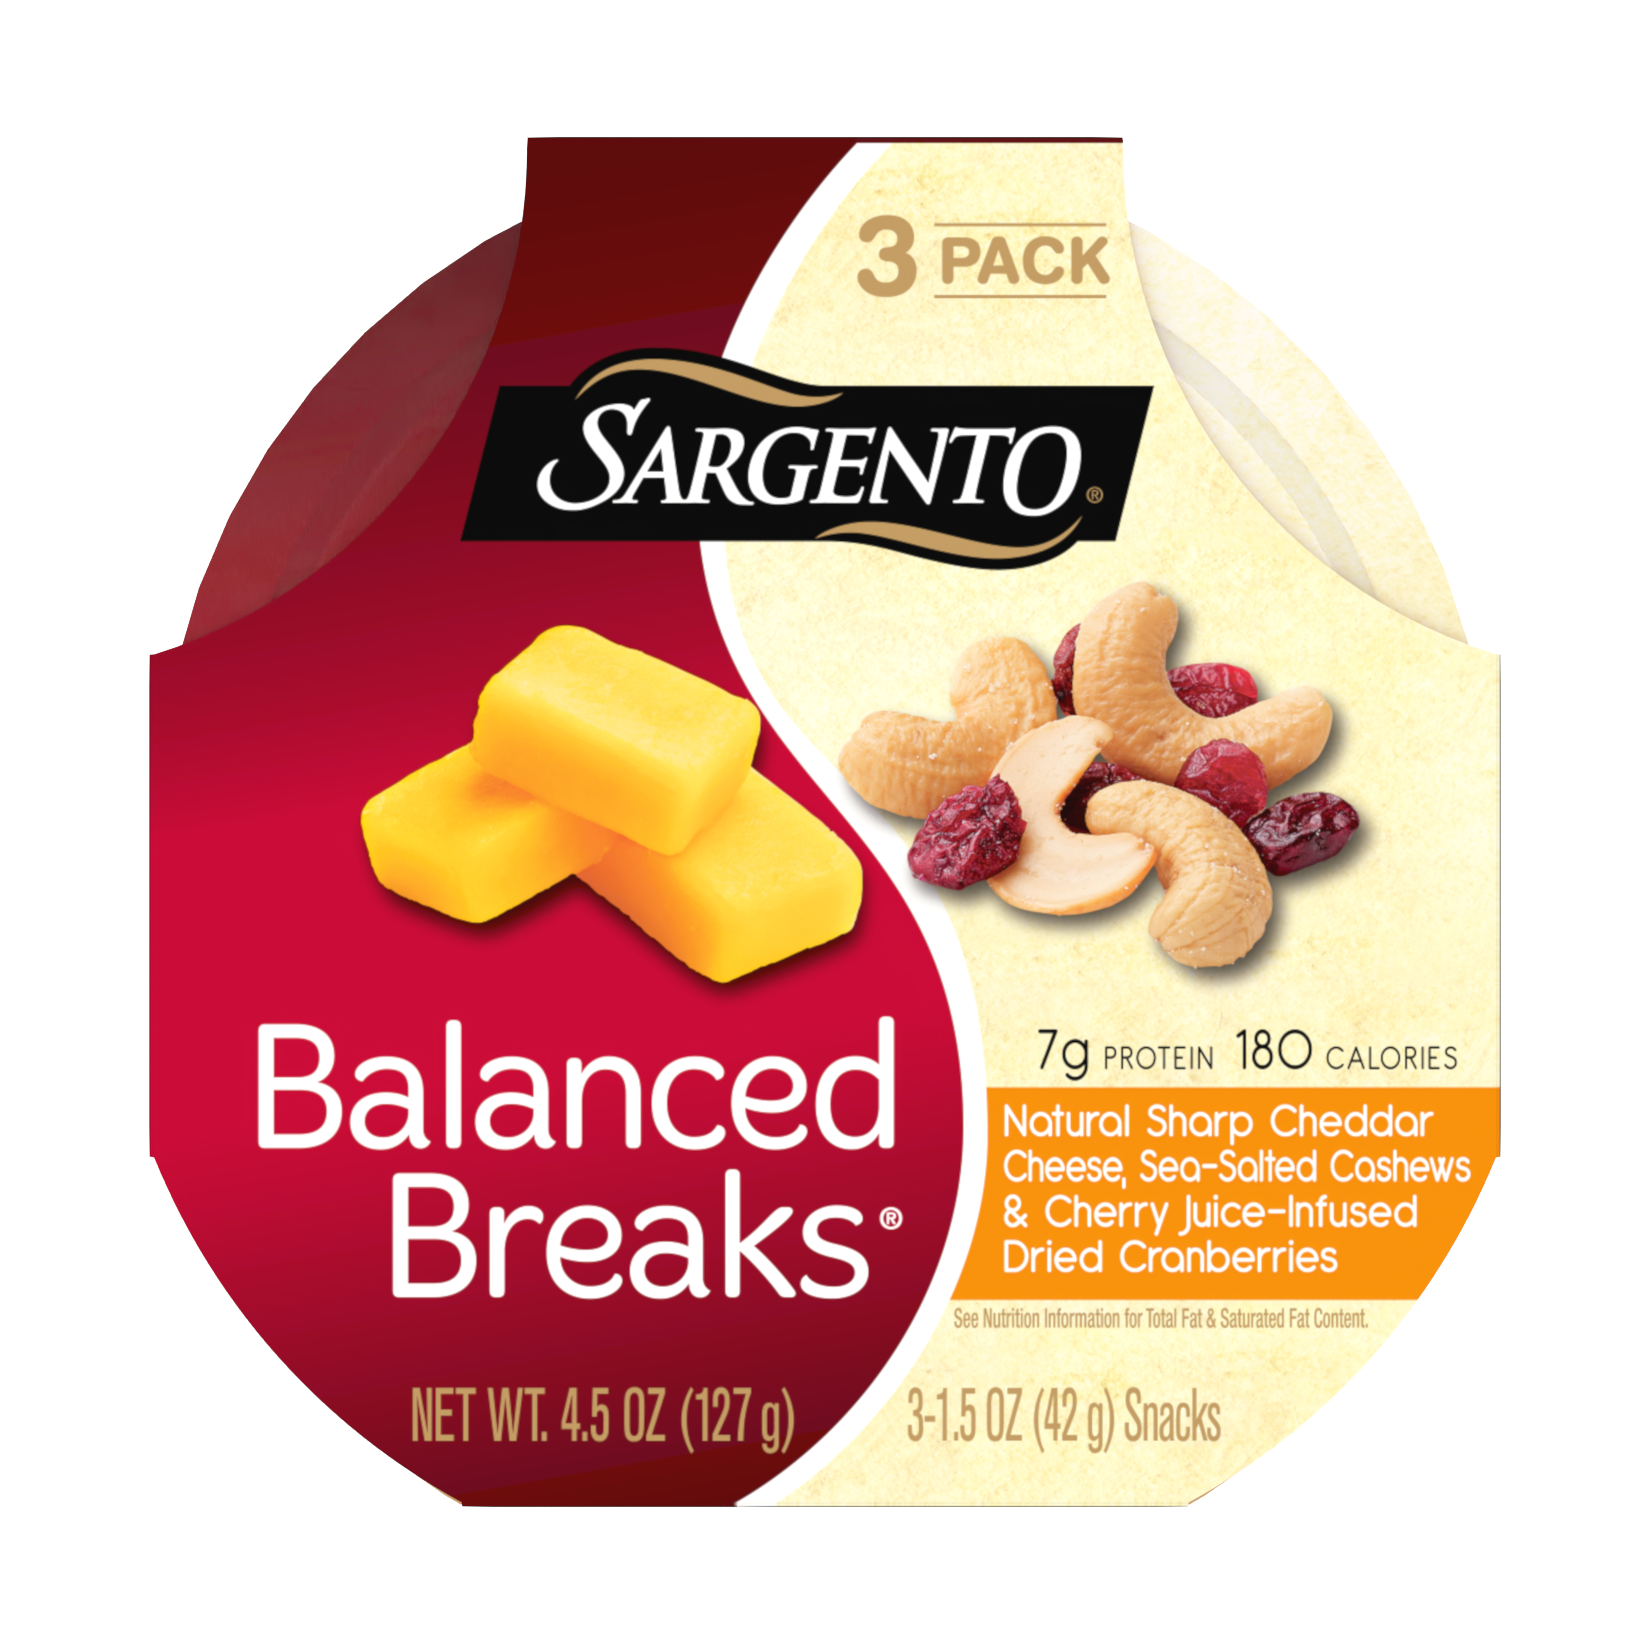 Sargento® Balanced Breaks®, Natural Sharp Cheddar Cheese, Sea-Salted Cashews and Cherry Juice-Infused Dried Cranberries